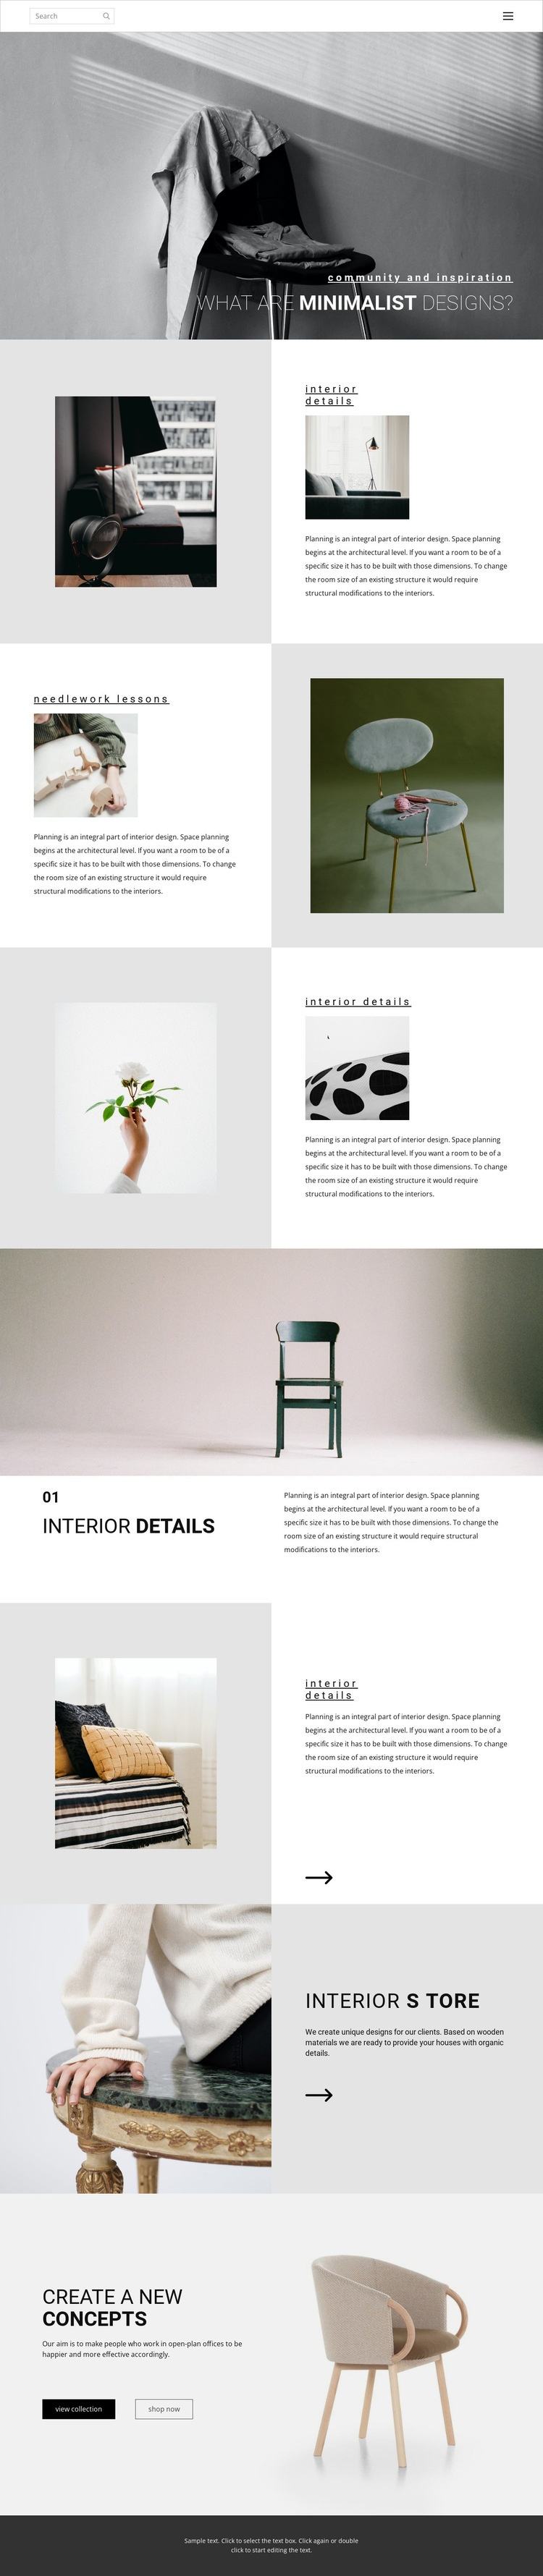 Make your home special Homepage Design